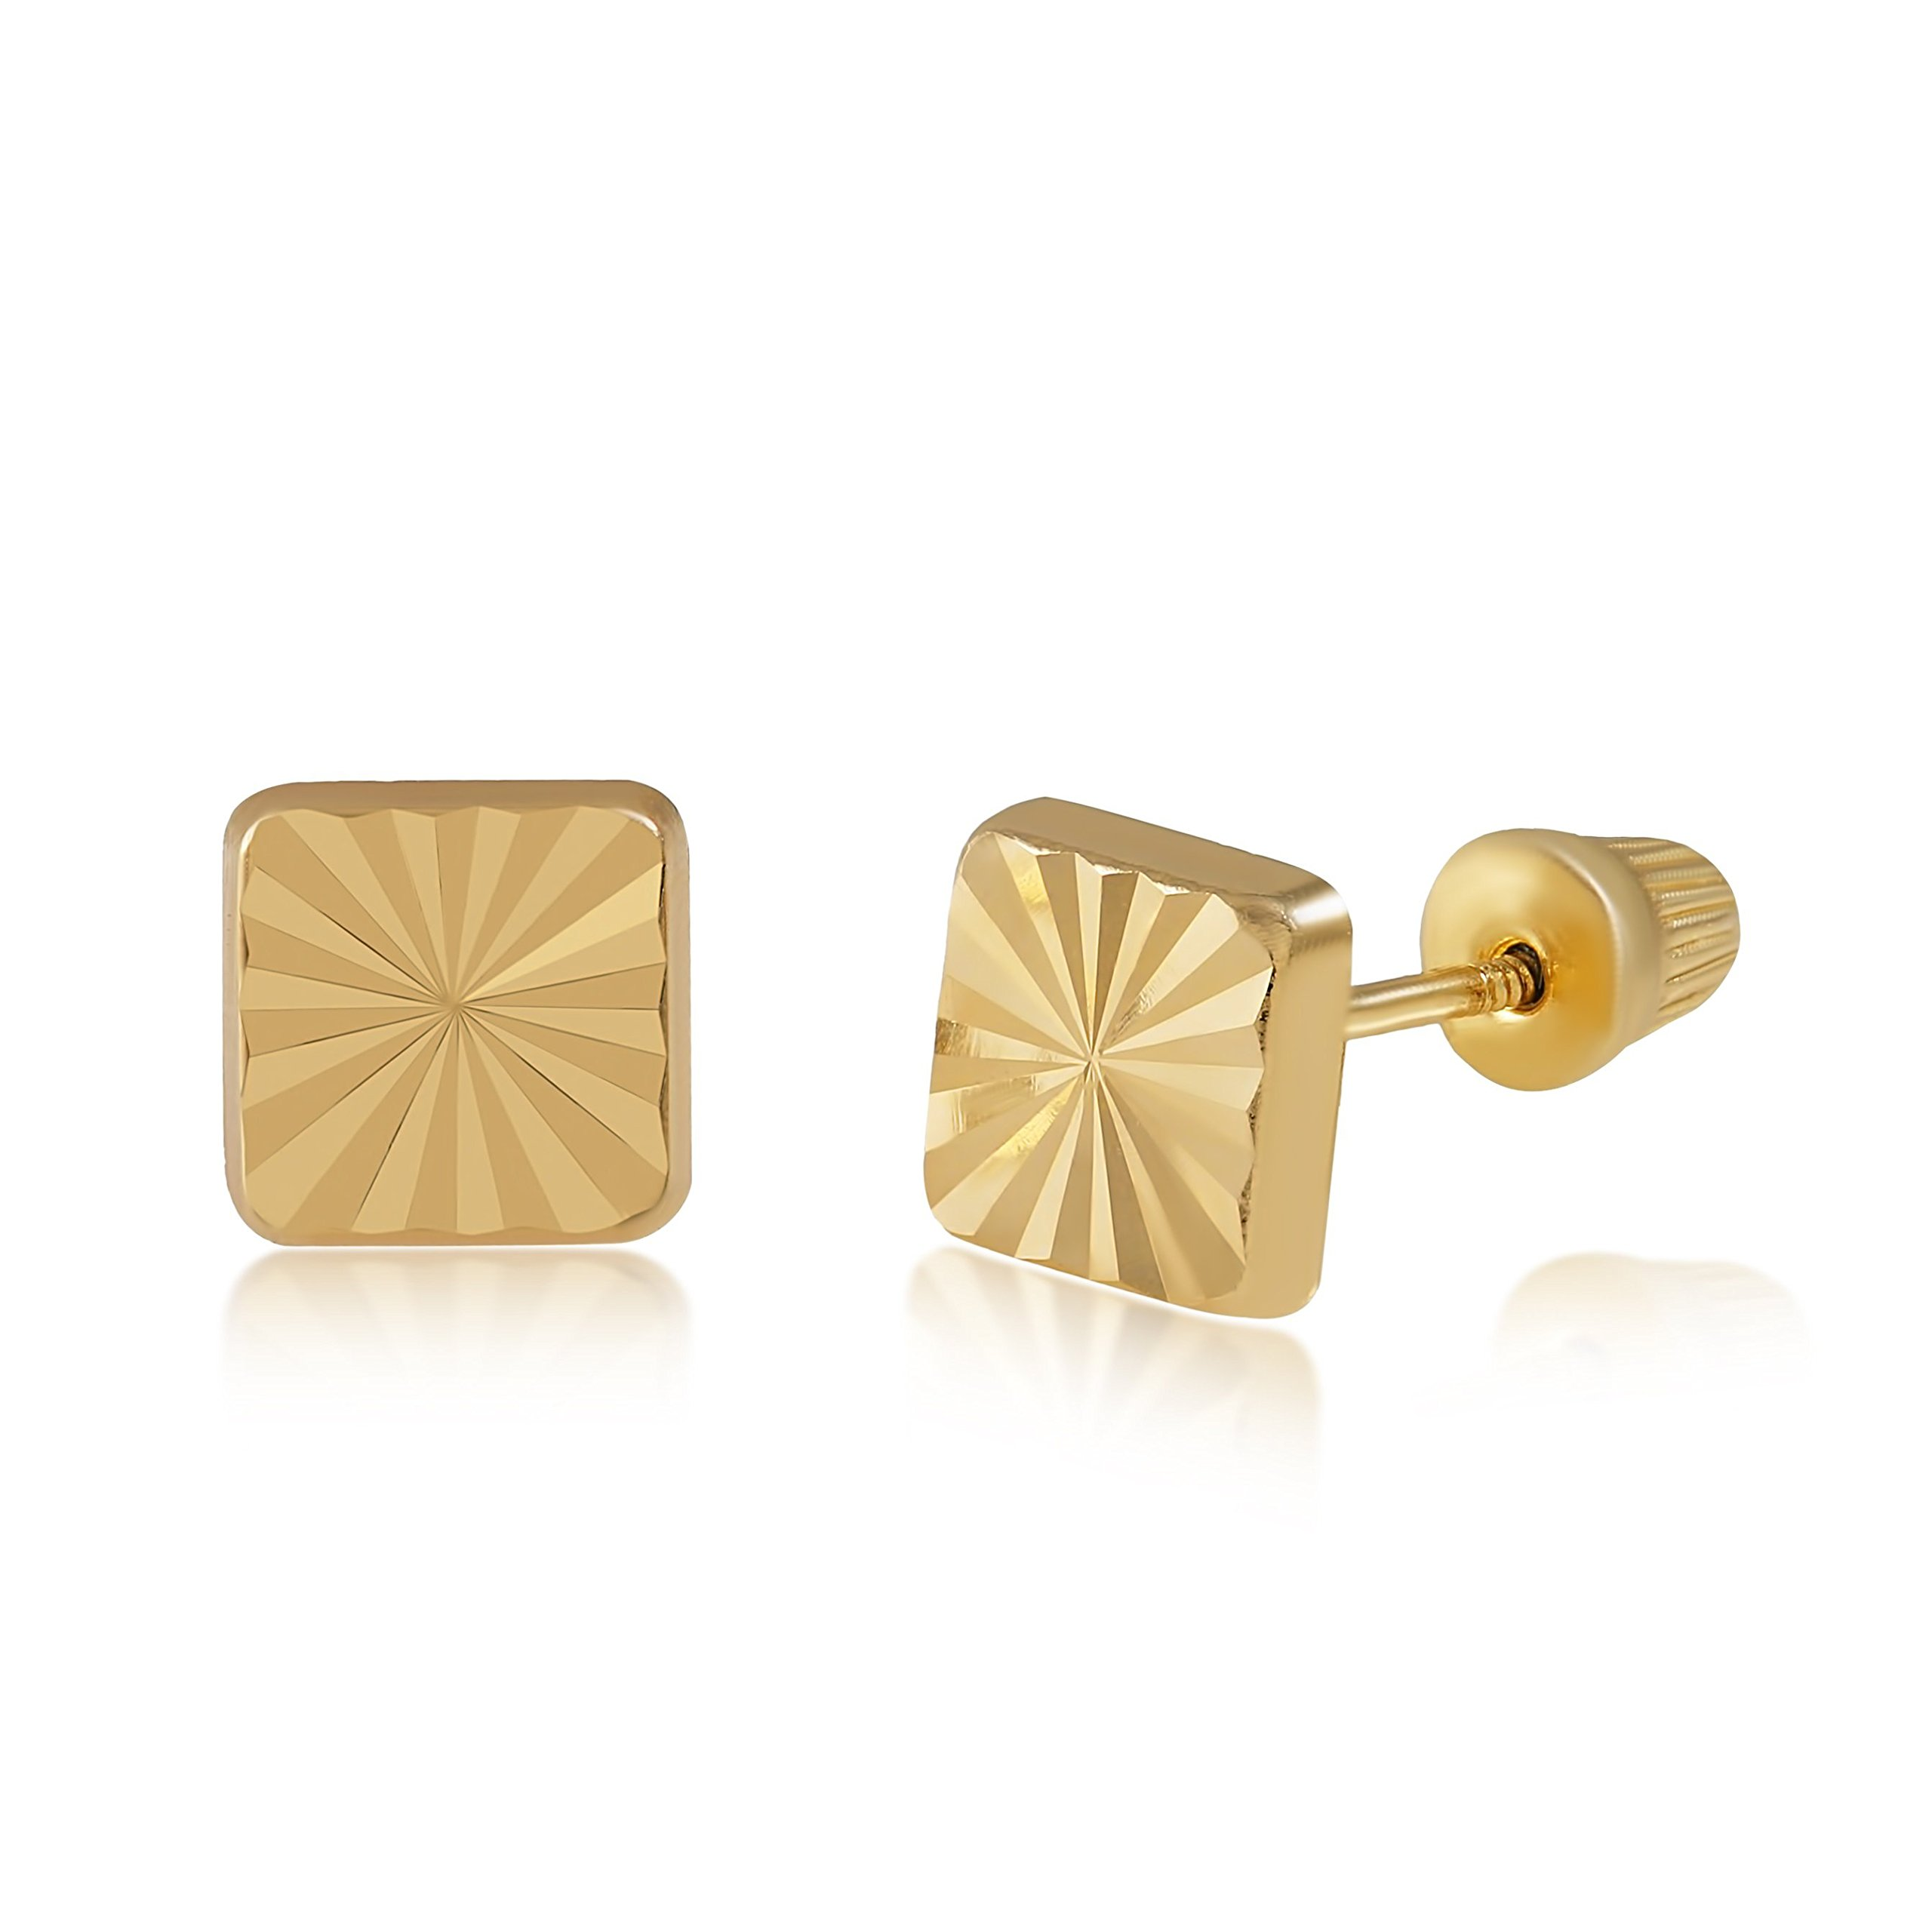 Balluccitoosi 14k Gold Tiny Diamond Cut Square Stud Earrings for Women & Girls - Real Hypoallergenic for Sensitive Ears, Small & Minimalist by Balluccitoosi